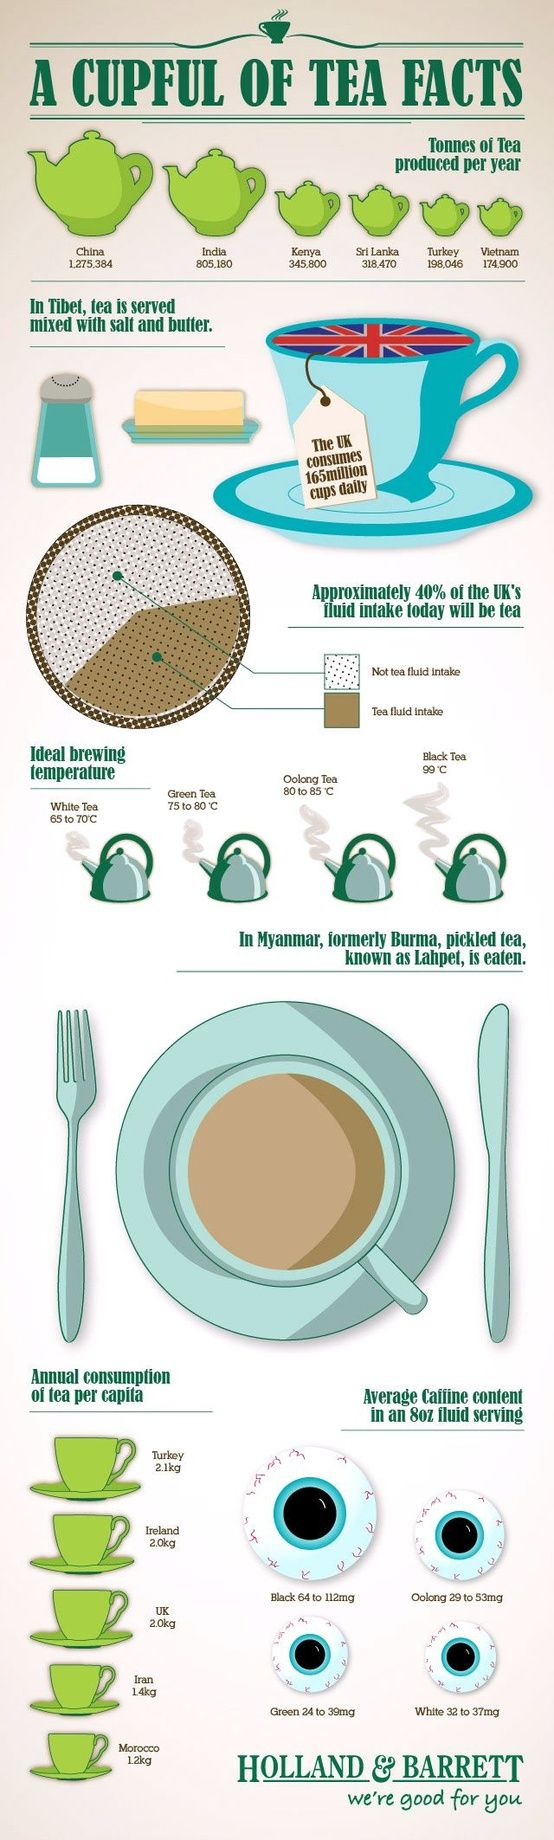 #Tea #Infographic - There is science based evidence of health benefits of herbal teas